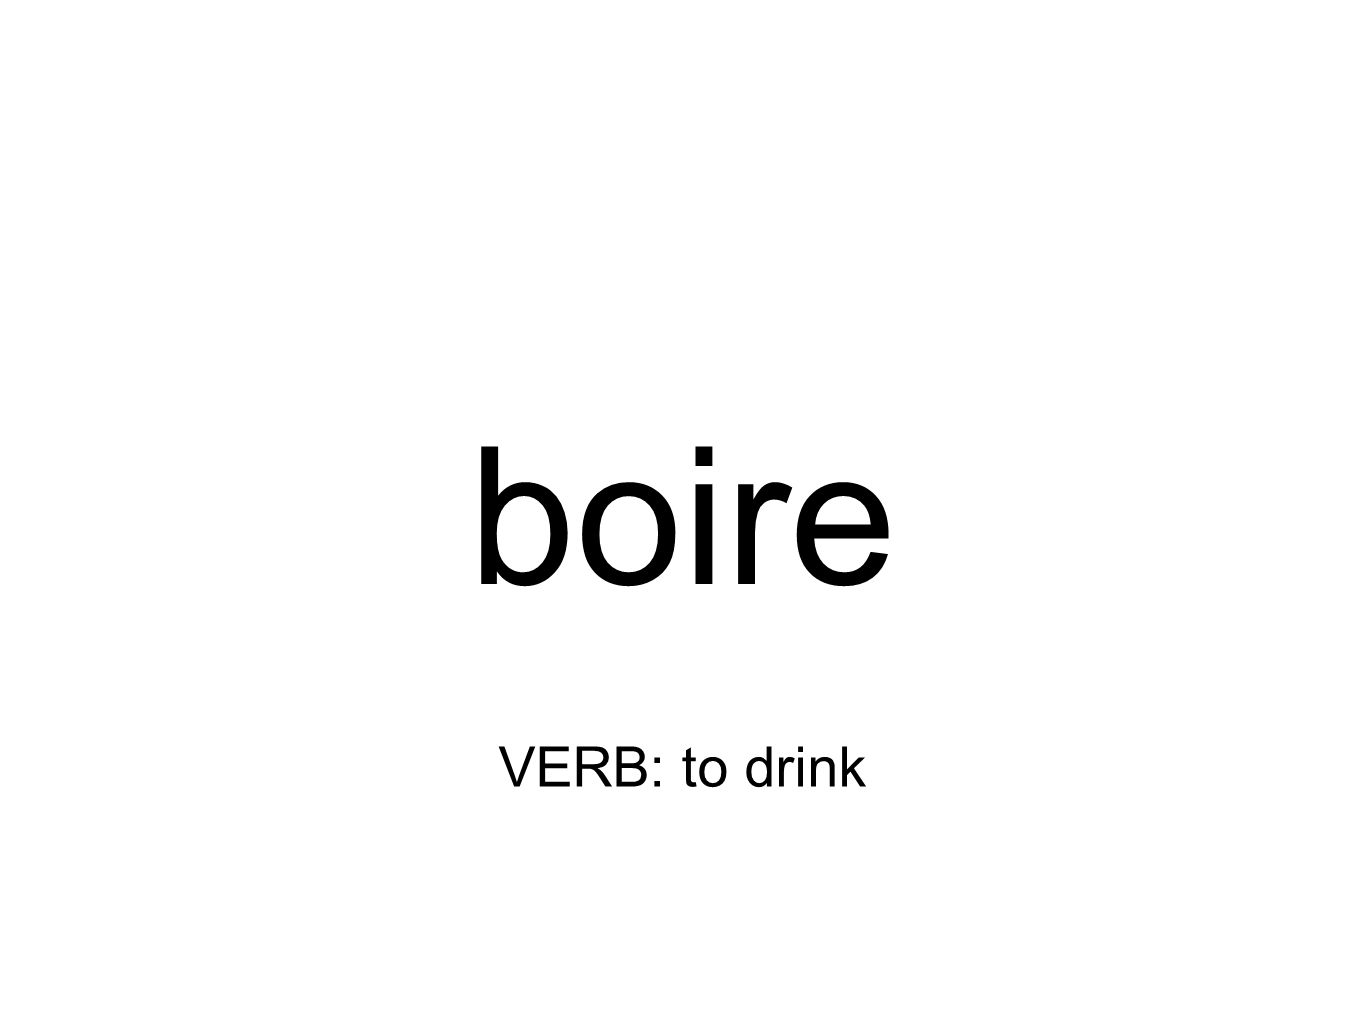 boire VERB: to drink